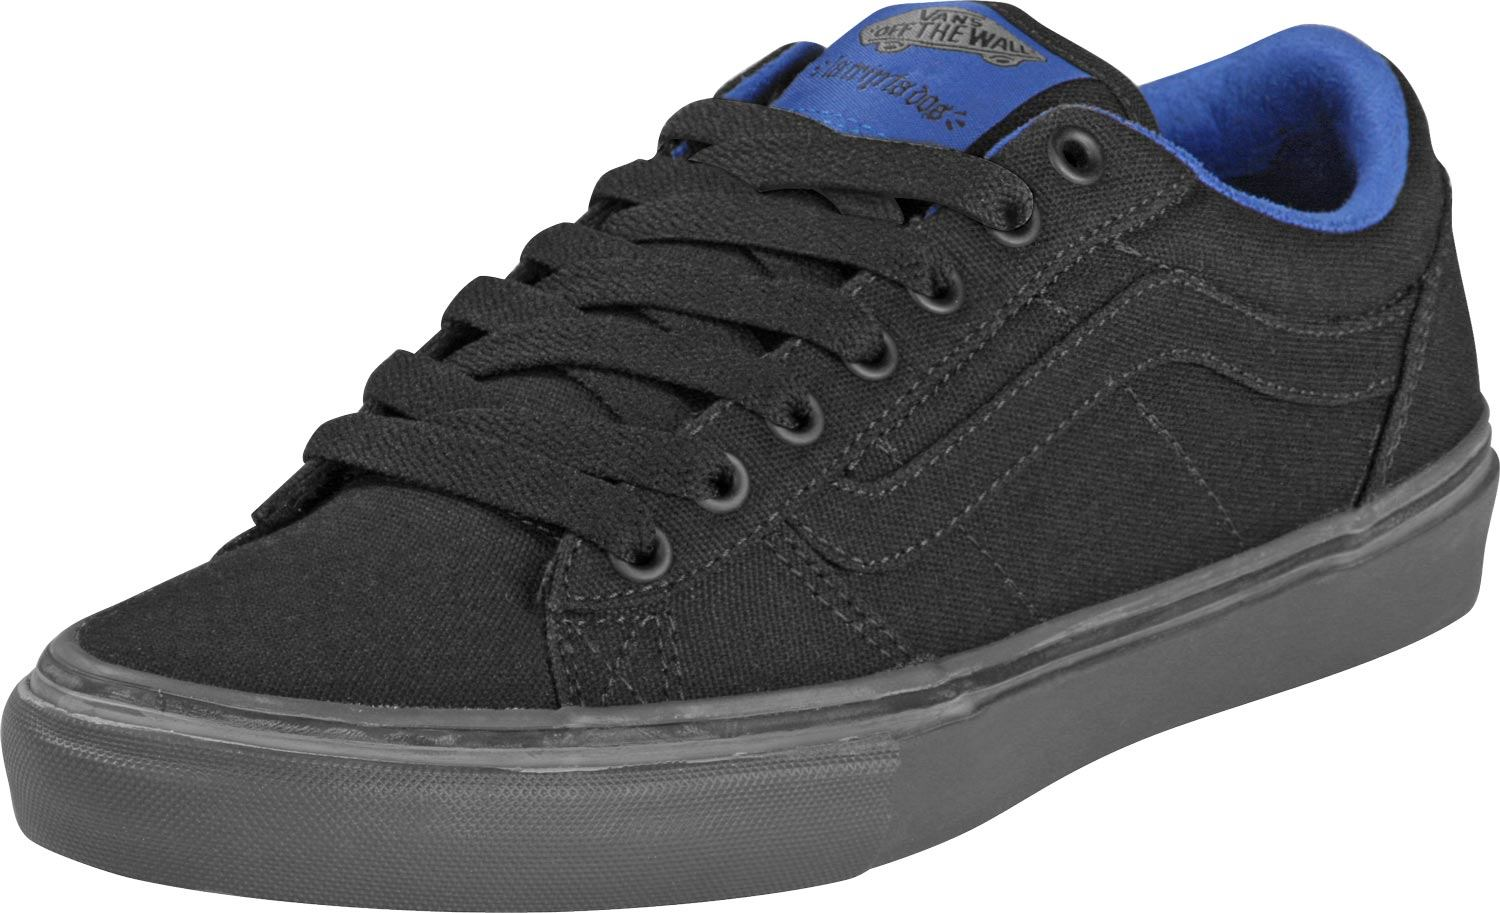 Vegan Vans skateboard shoes